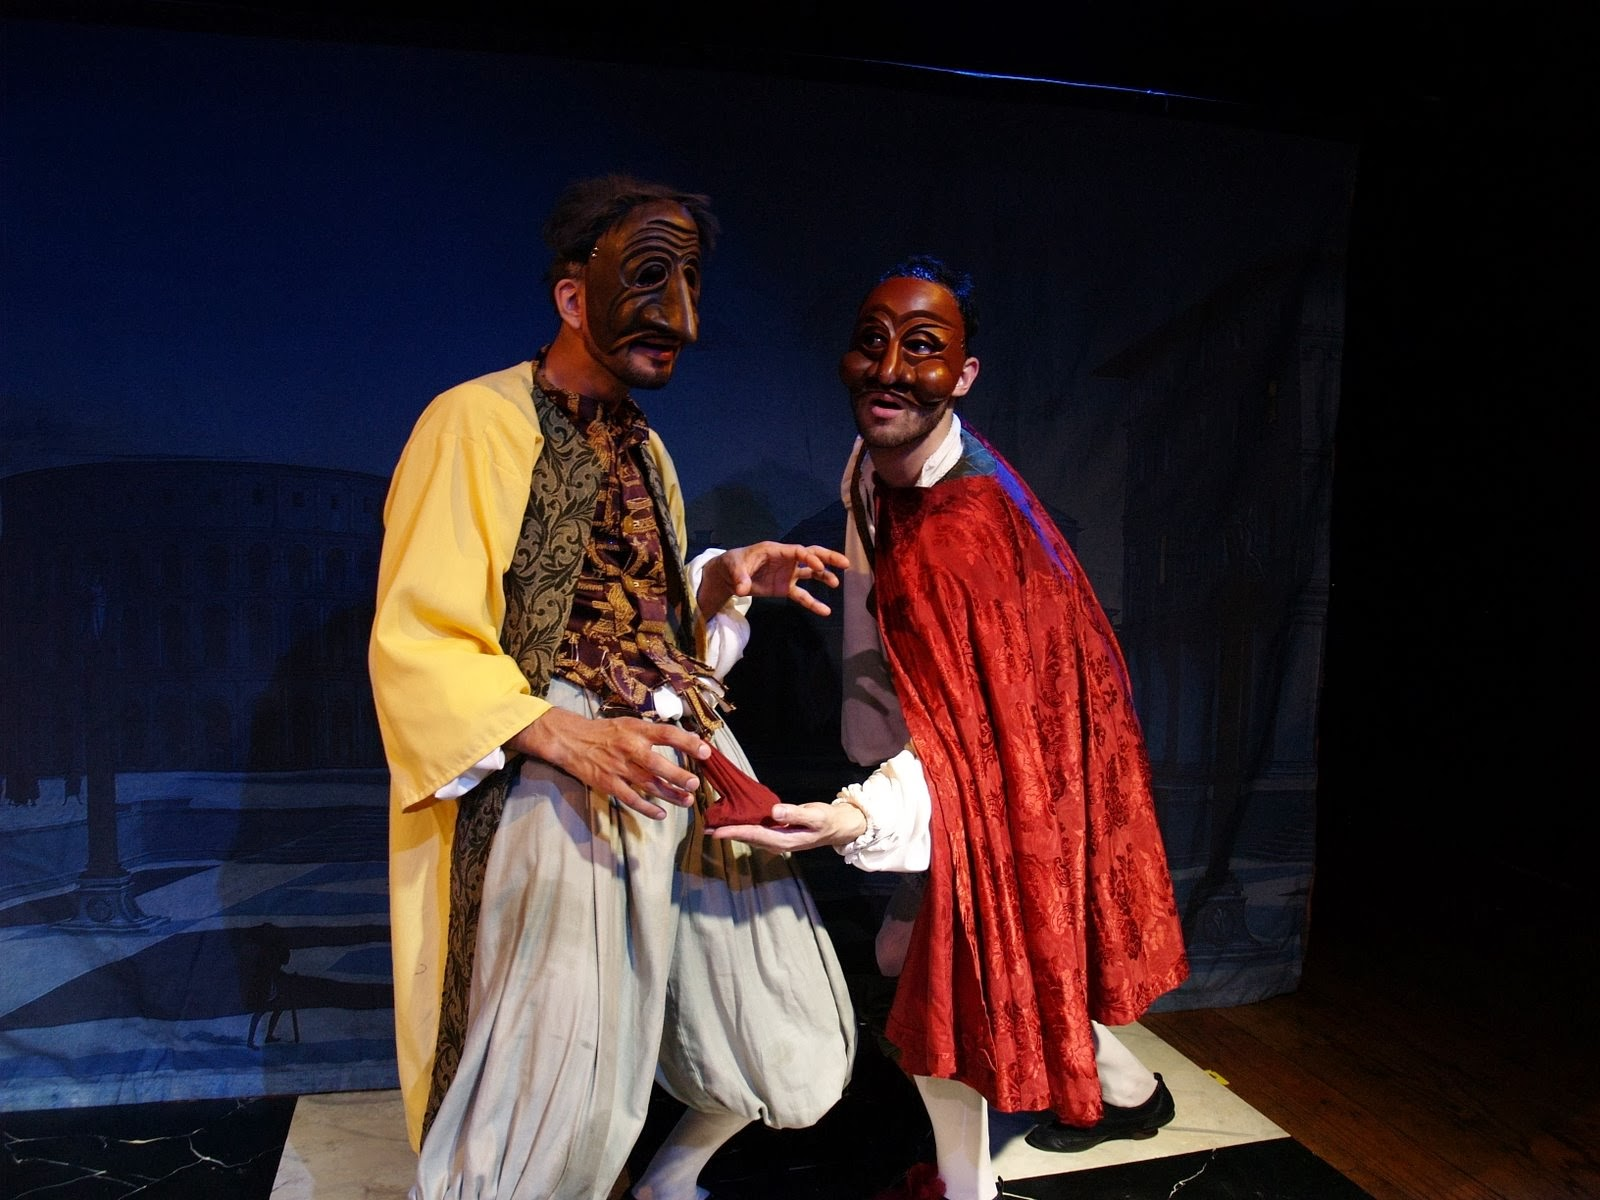 David Bengali & Cameron Oro in COMMEDIA DELL' ARTEMISIA